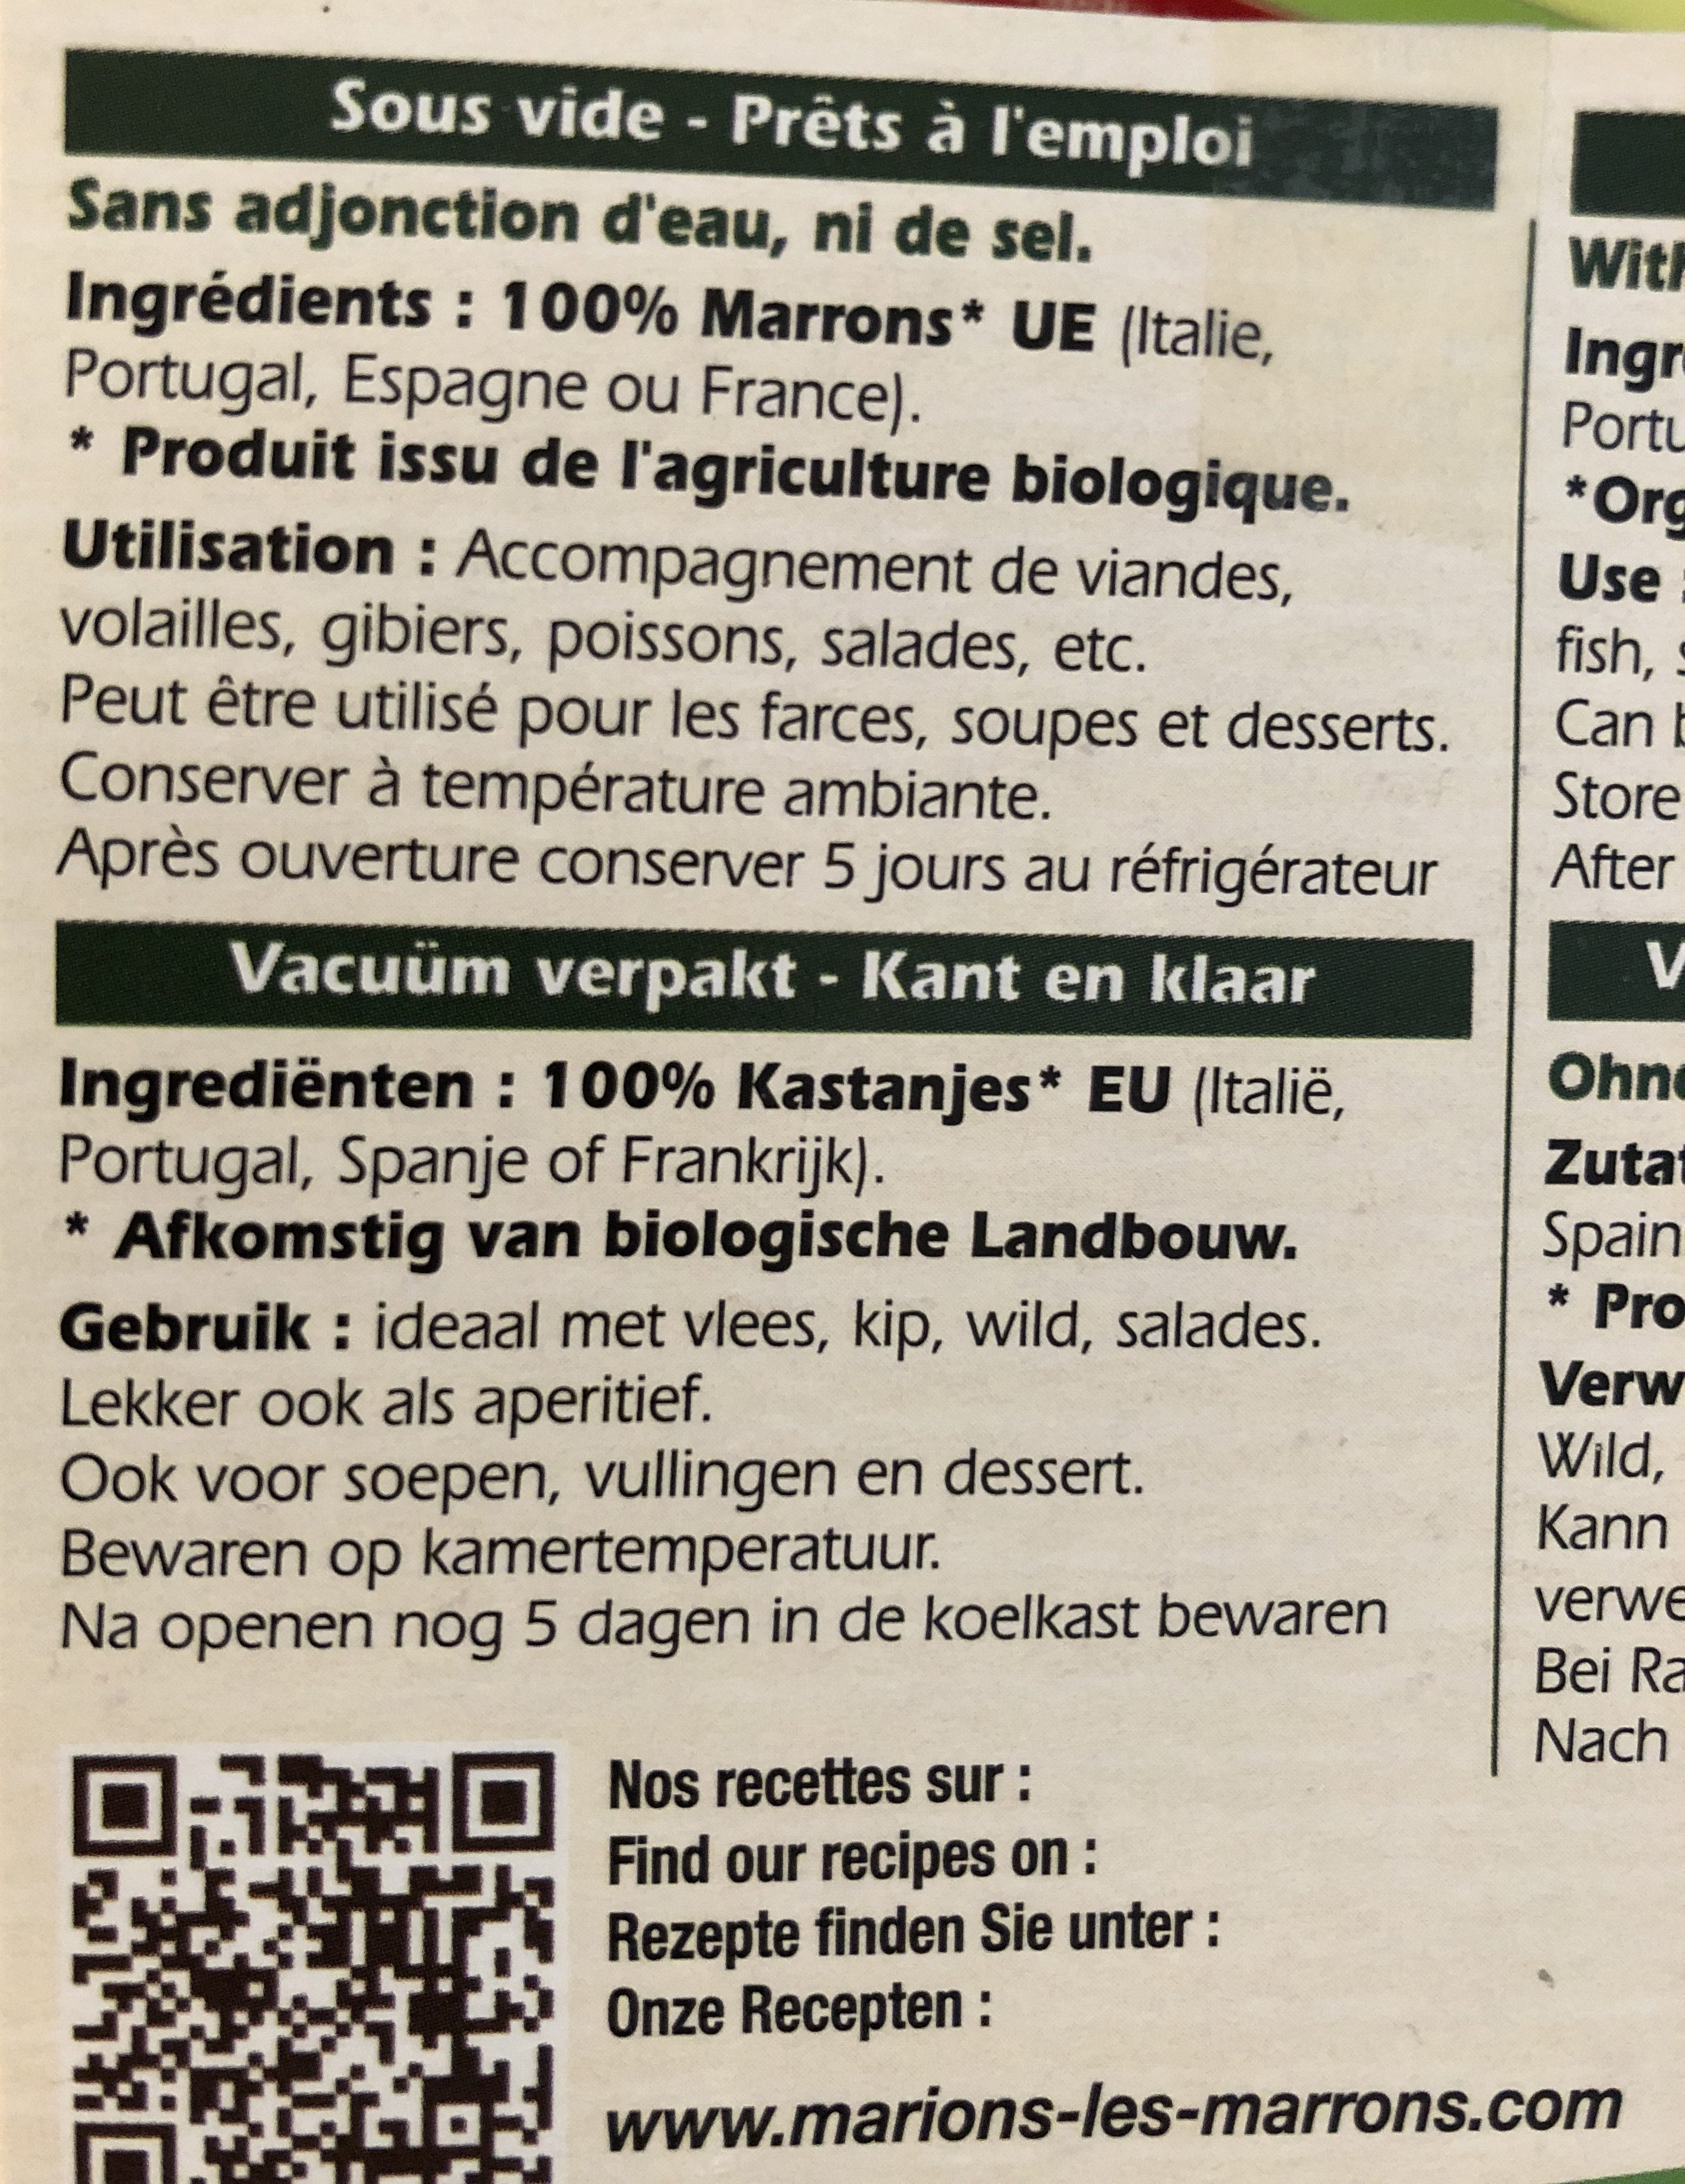 Marrons bio cuits - Ingredients - fr